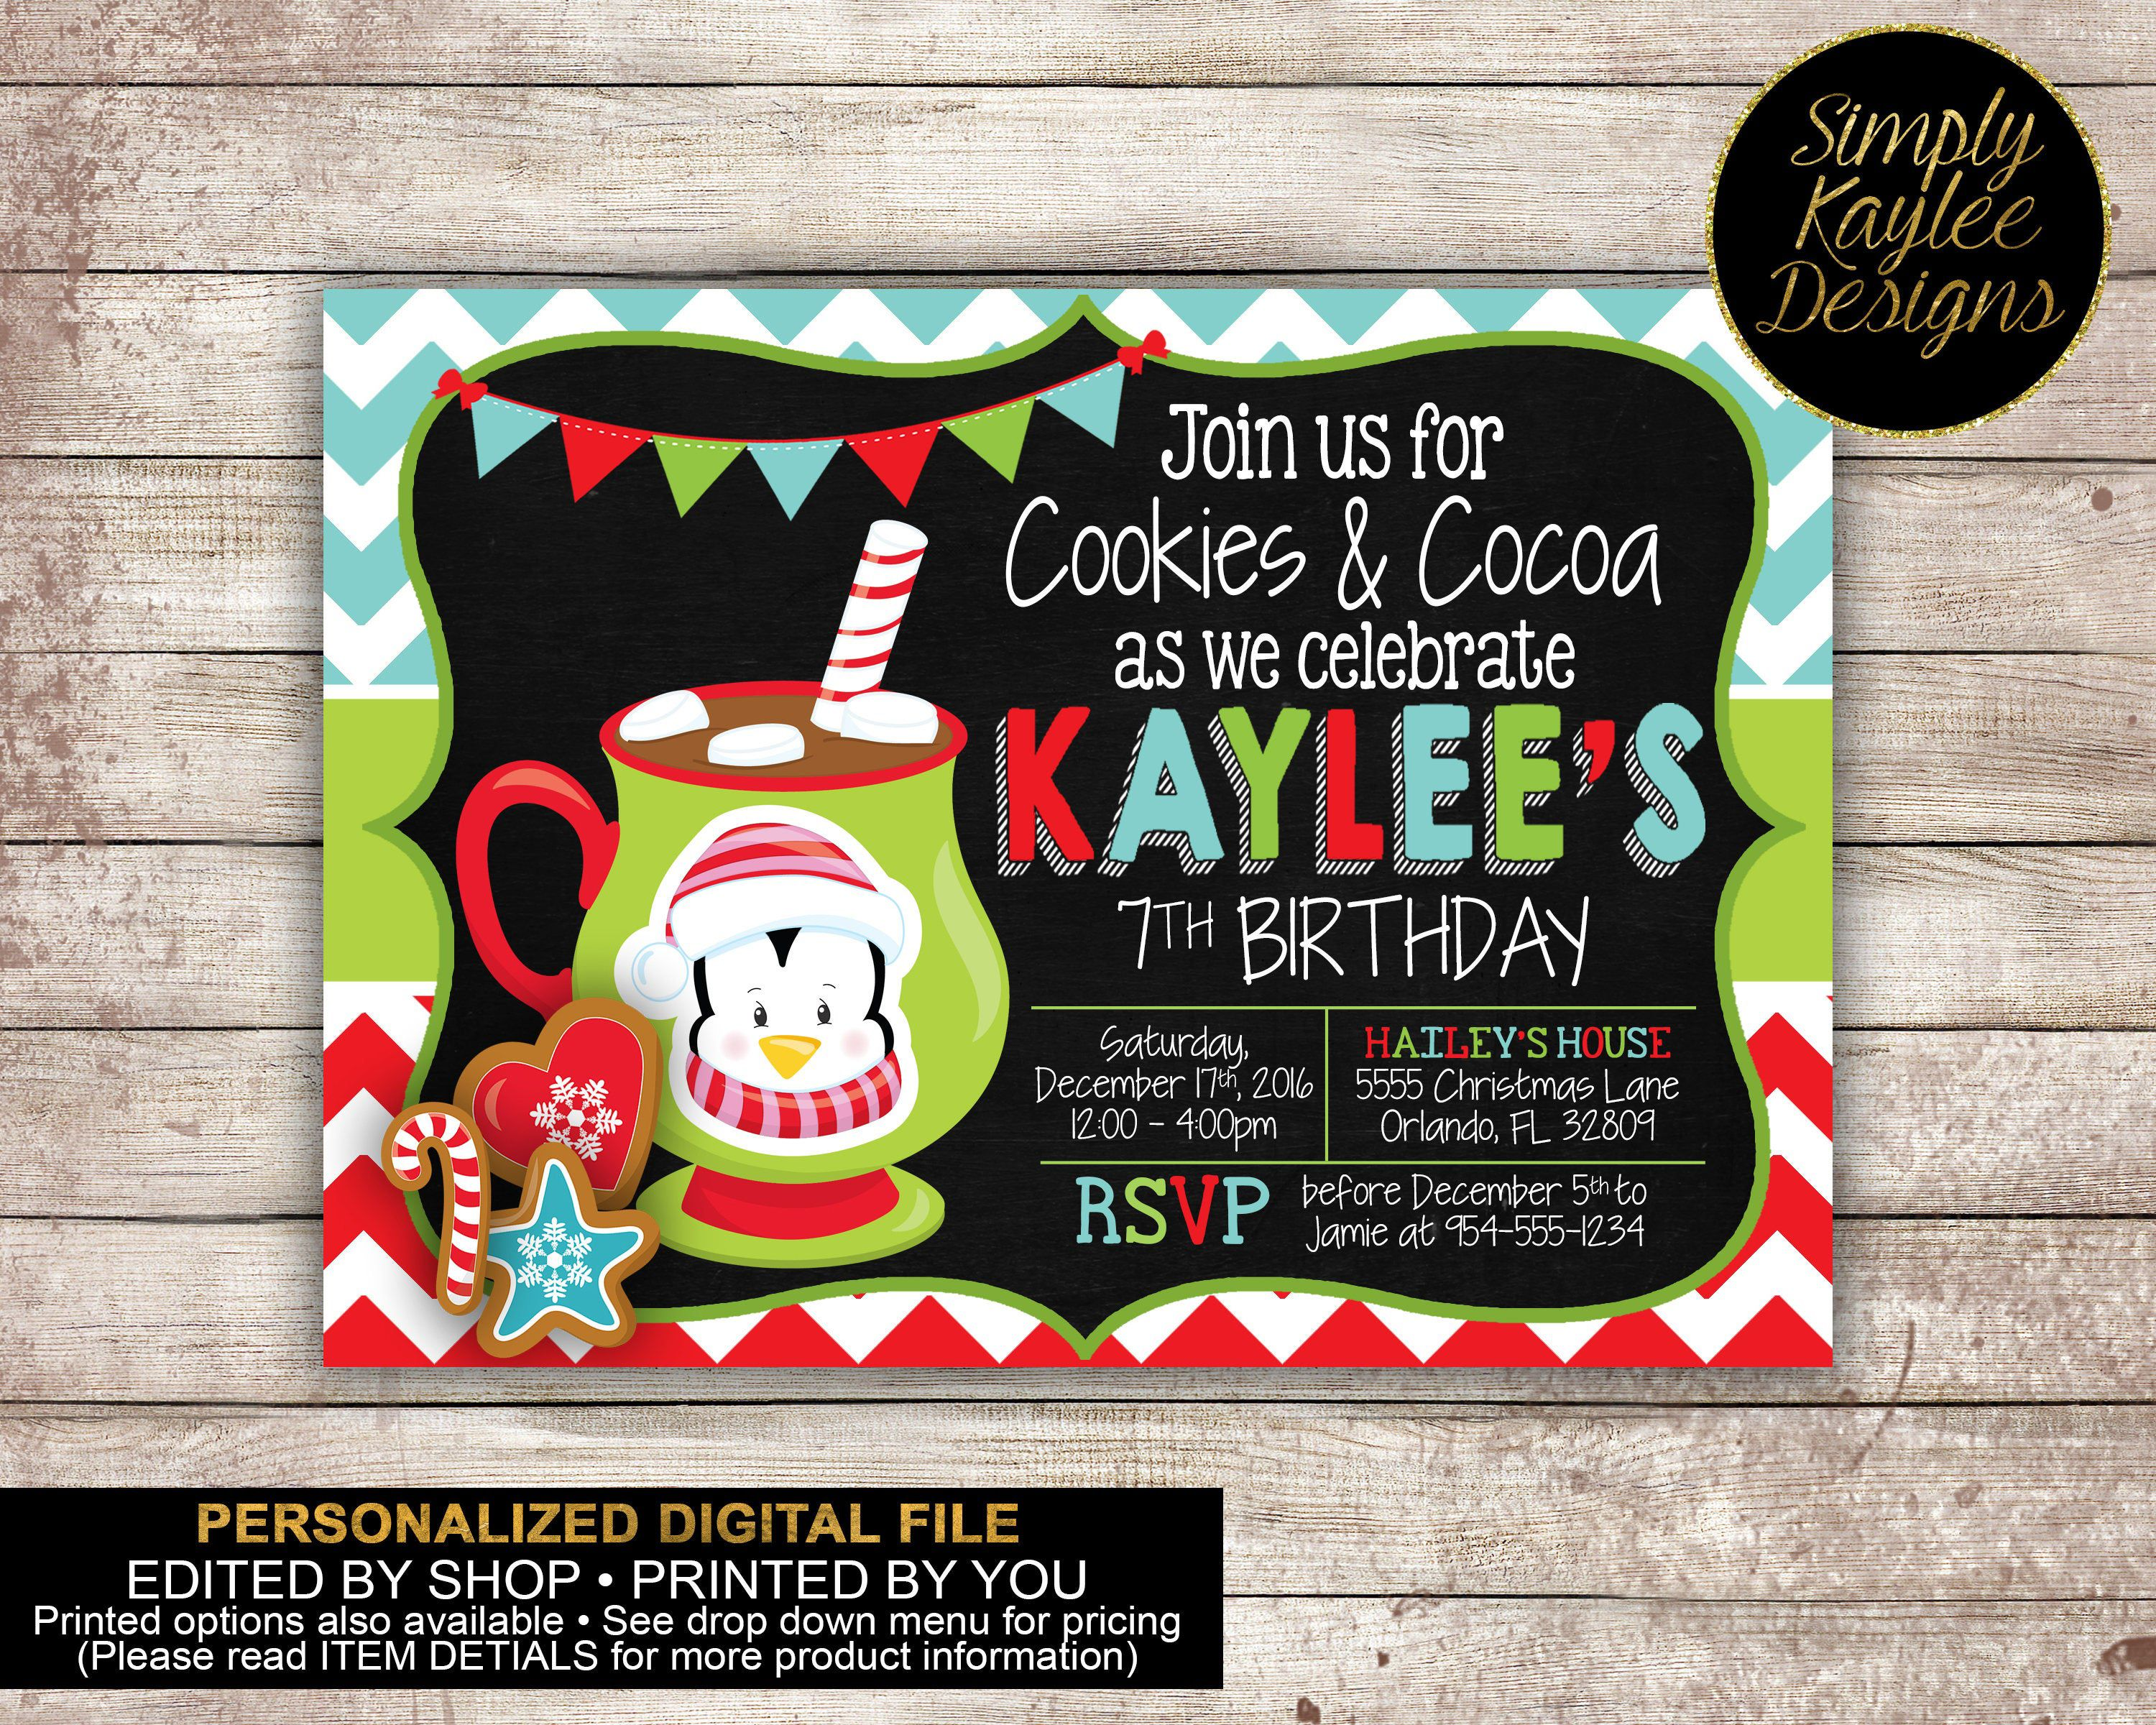 Pin by Simply Kaylee Designs on Cookies and Cocoa Birthday